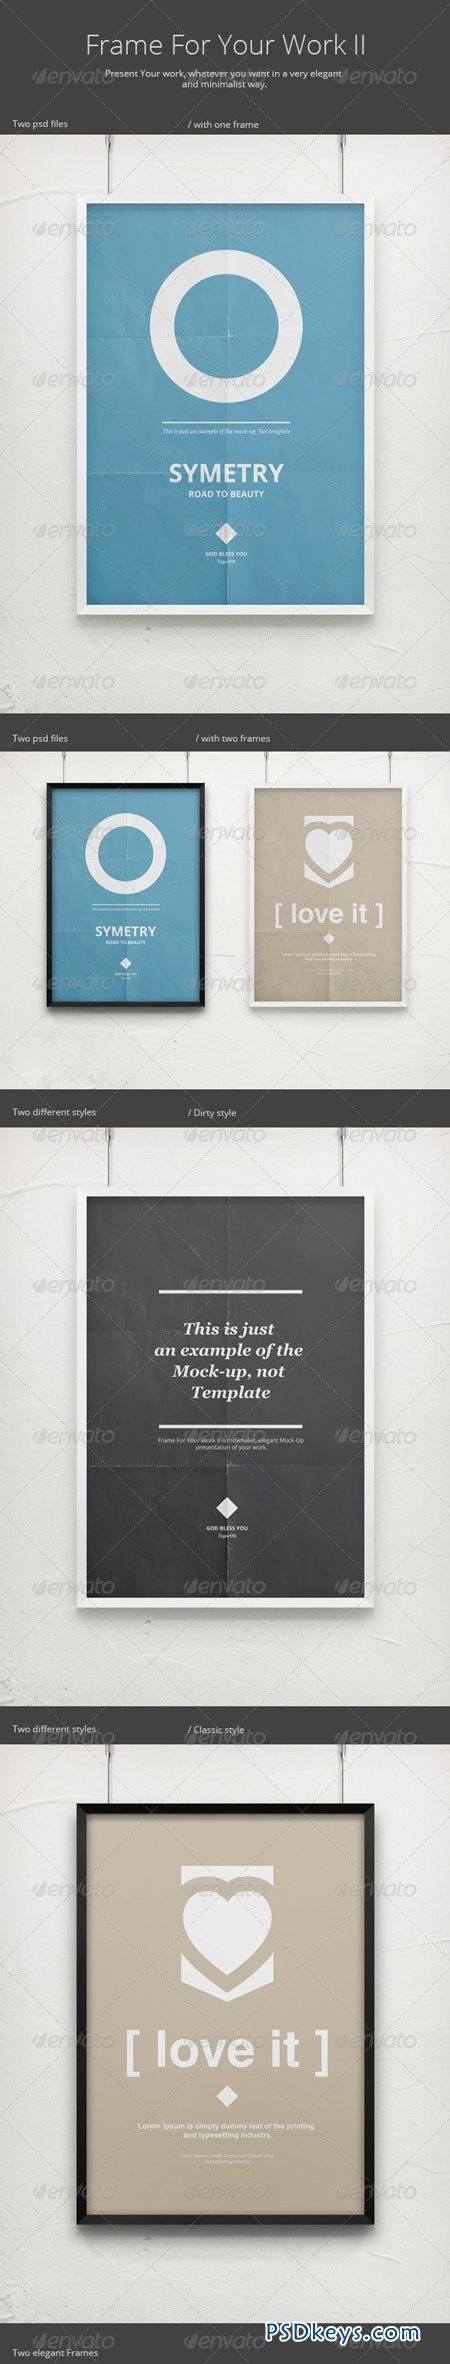 Frame For Your Work II Poster Mock-Up 2800509